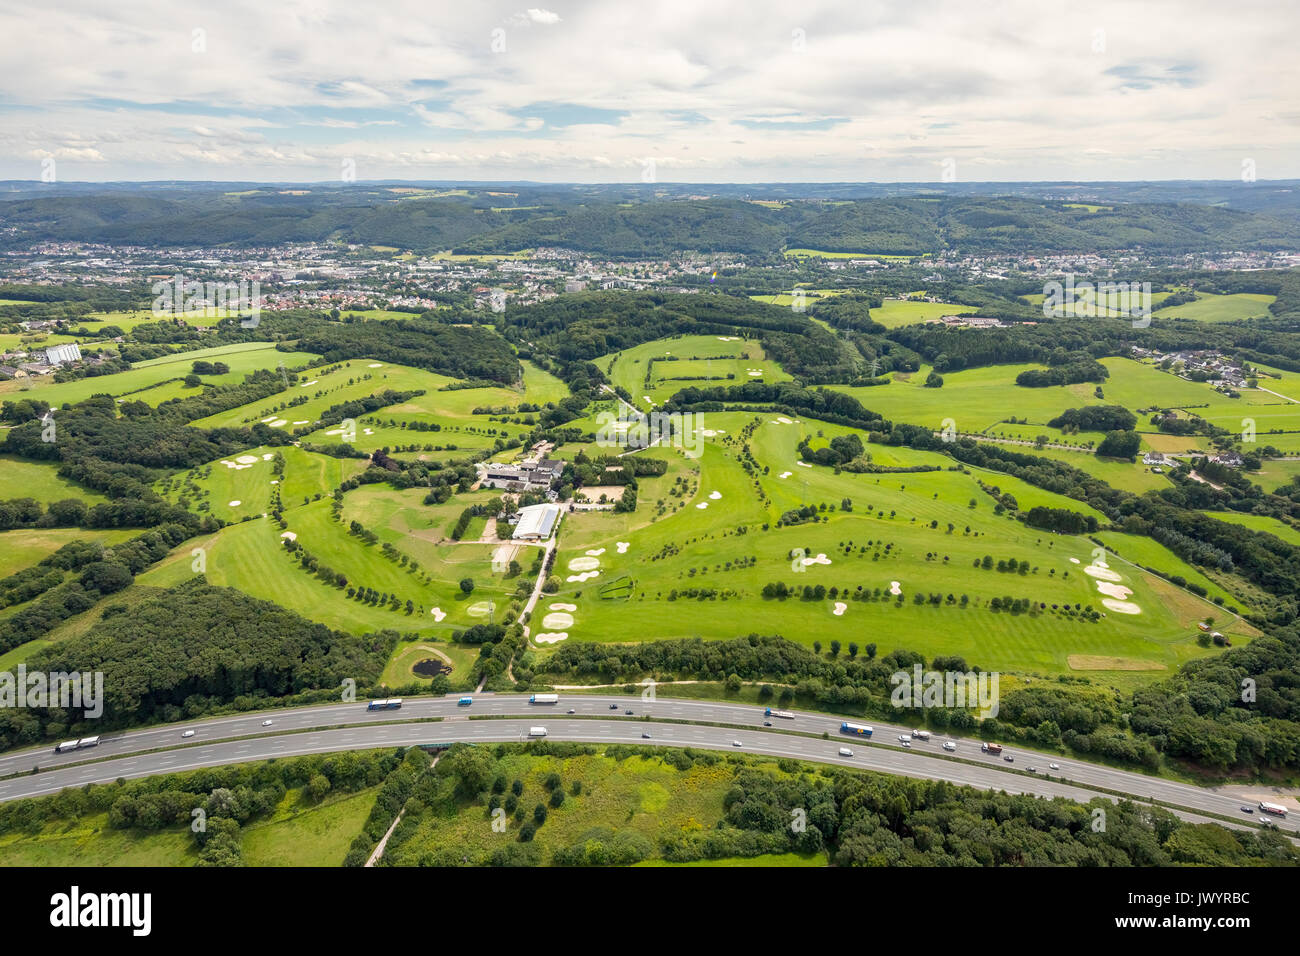 Golfclub Good mountains, golf course, golfing, mower, mower on the putting area, Gevelsberg, Ruhr area, North Rhine-Westphalia, Germany, Bergisches La - Stock Image